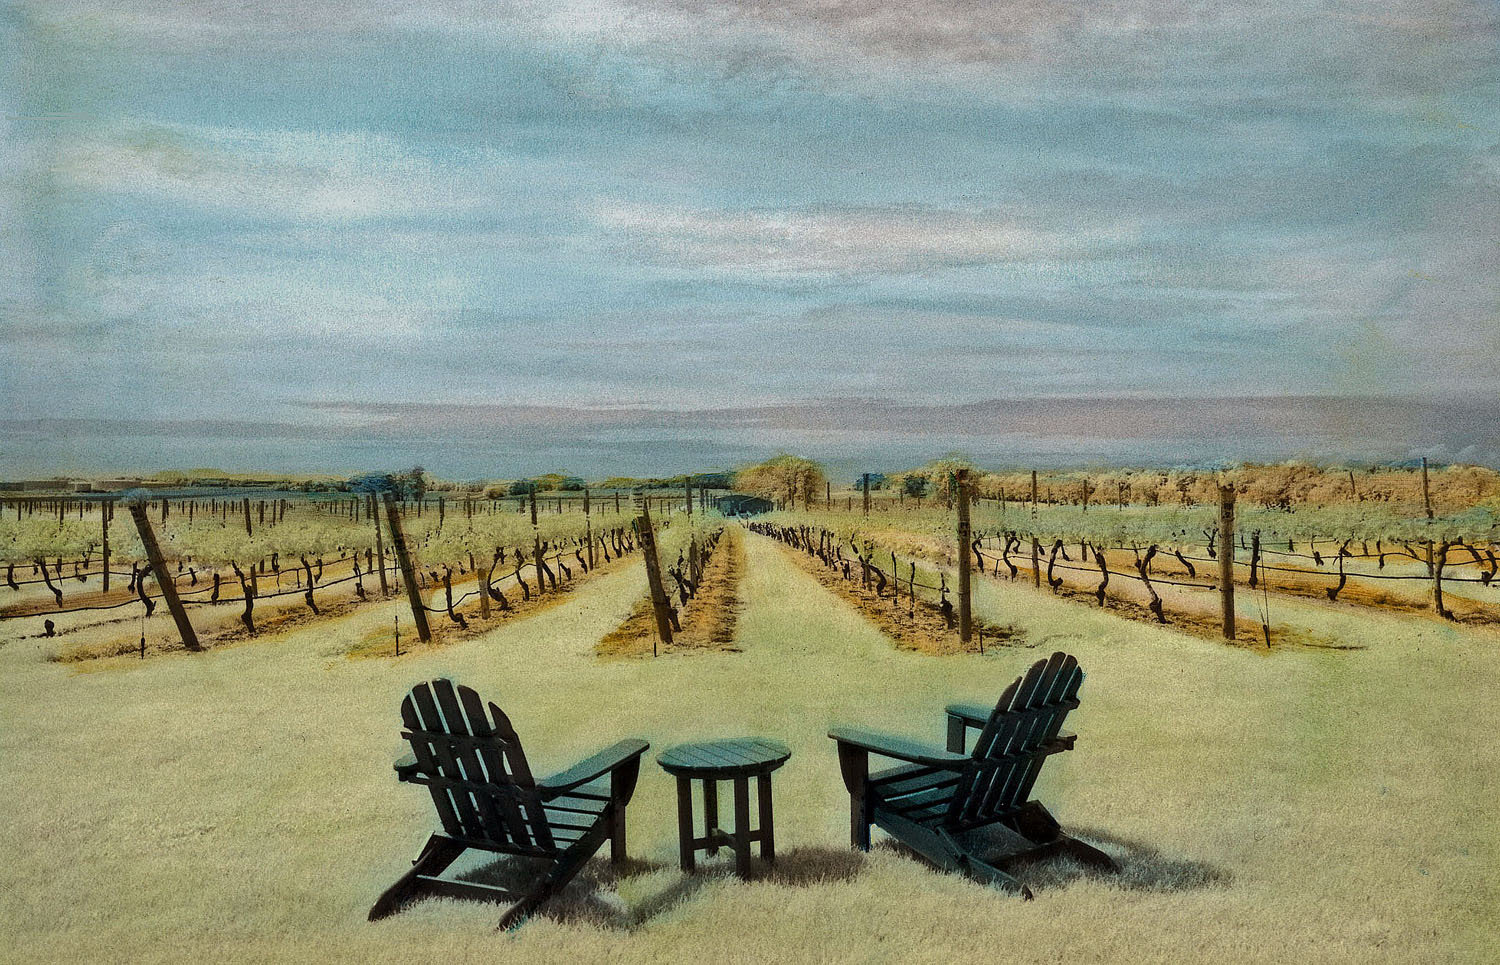 Vineyard in Summer - Infrared, Hand Painted Photograph - by Elizabeth Holmes